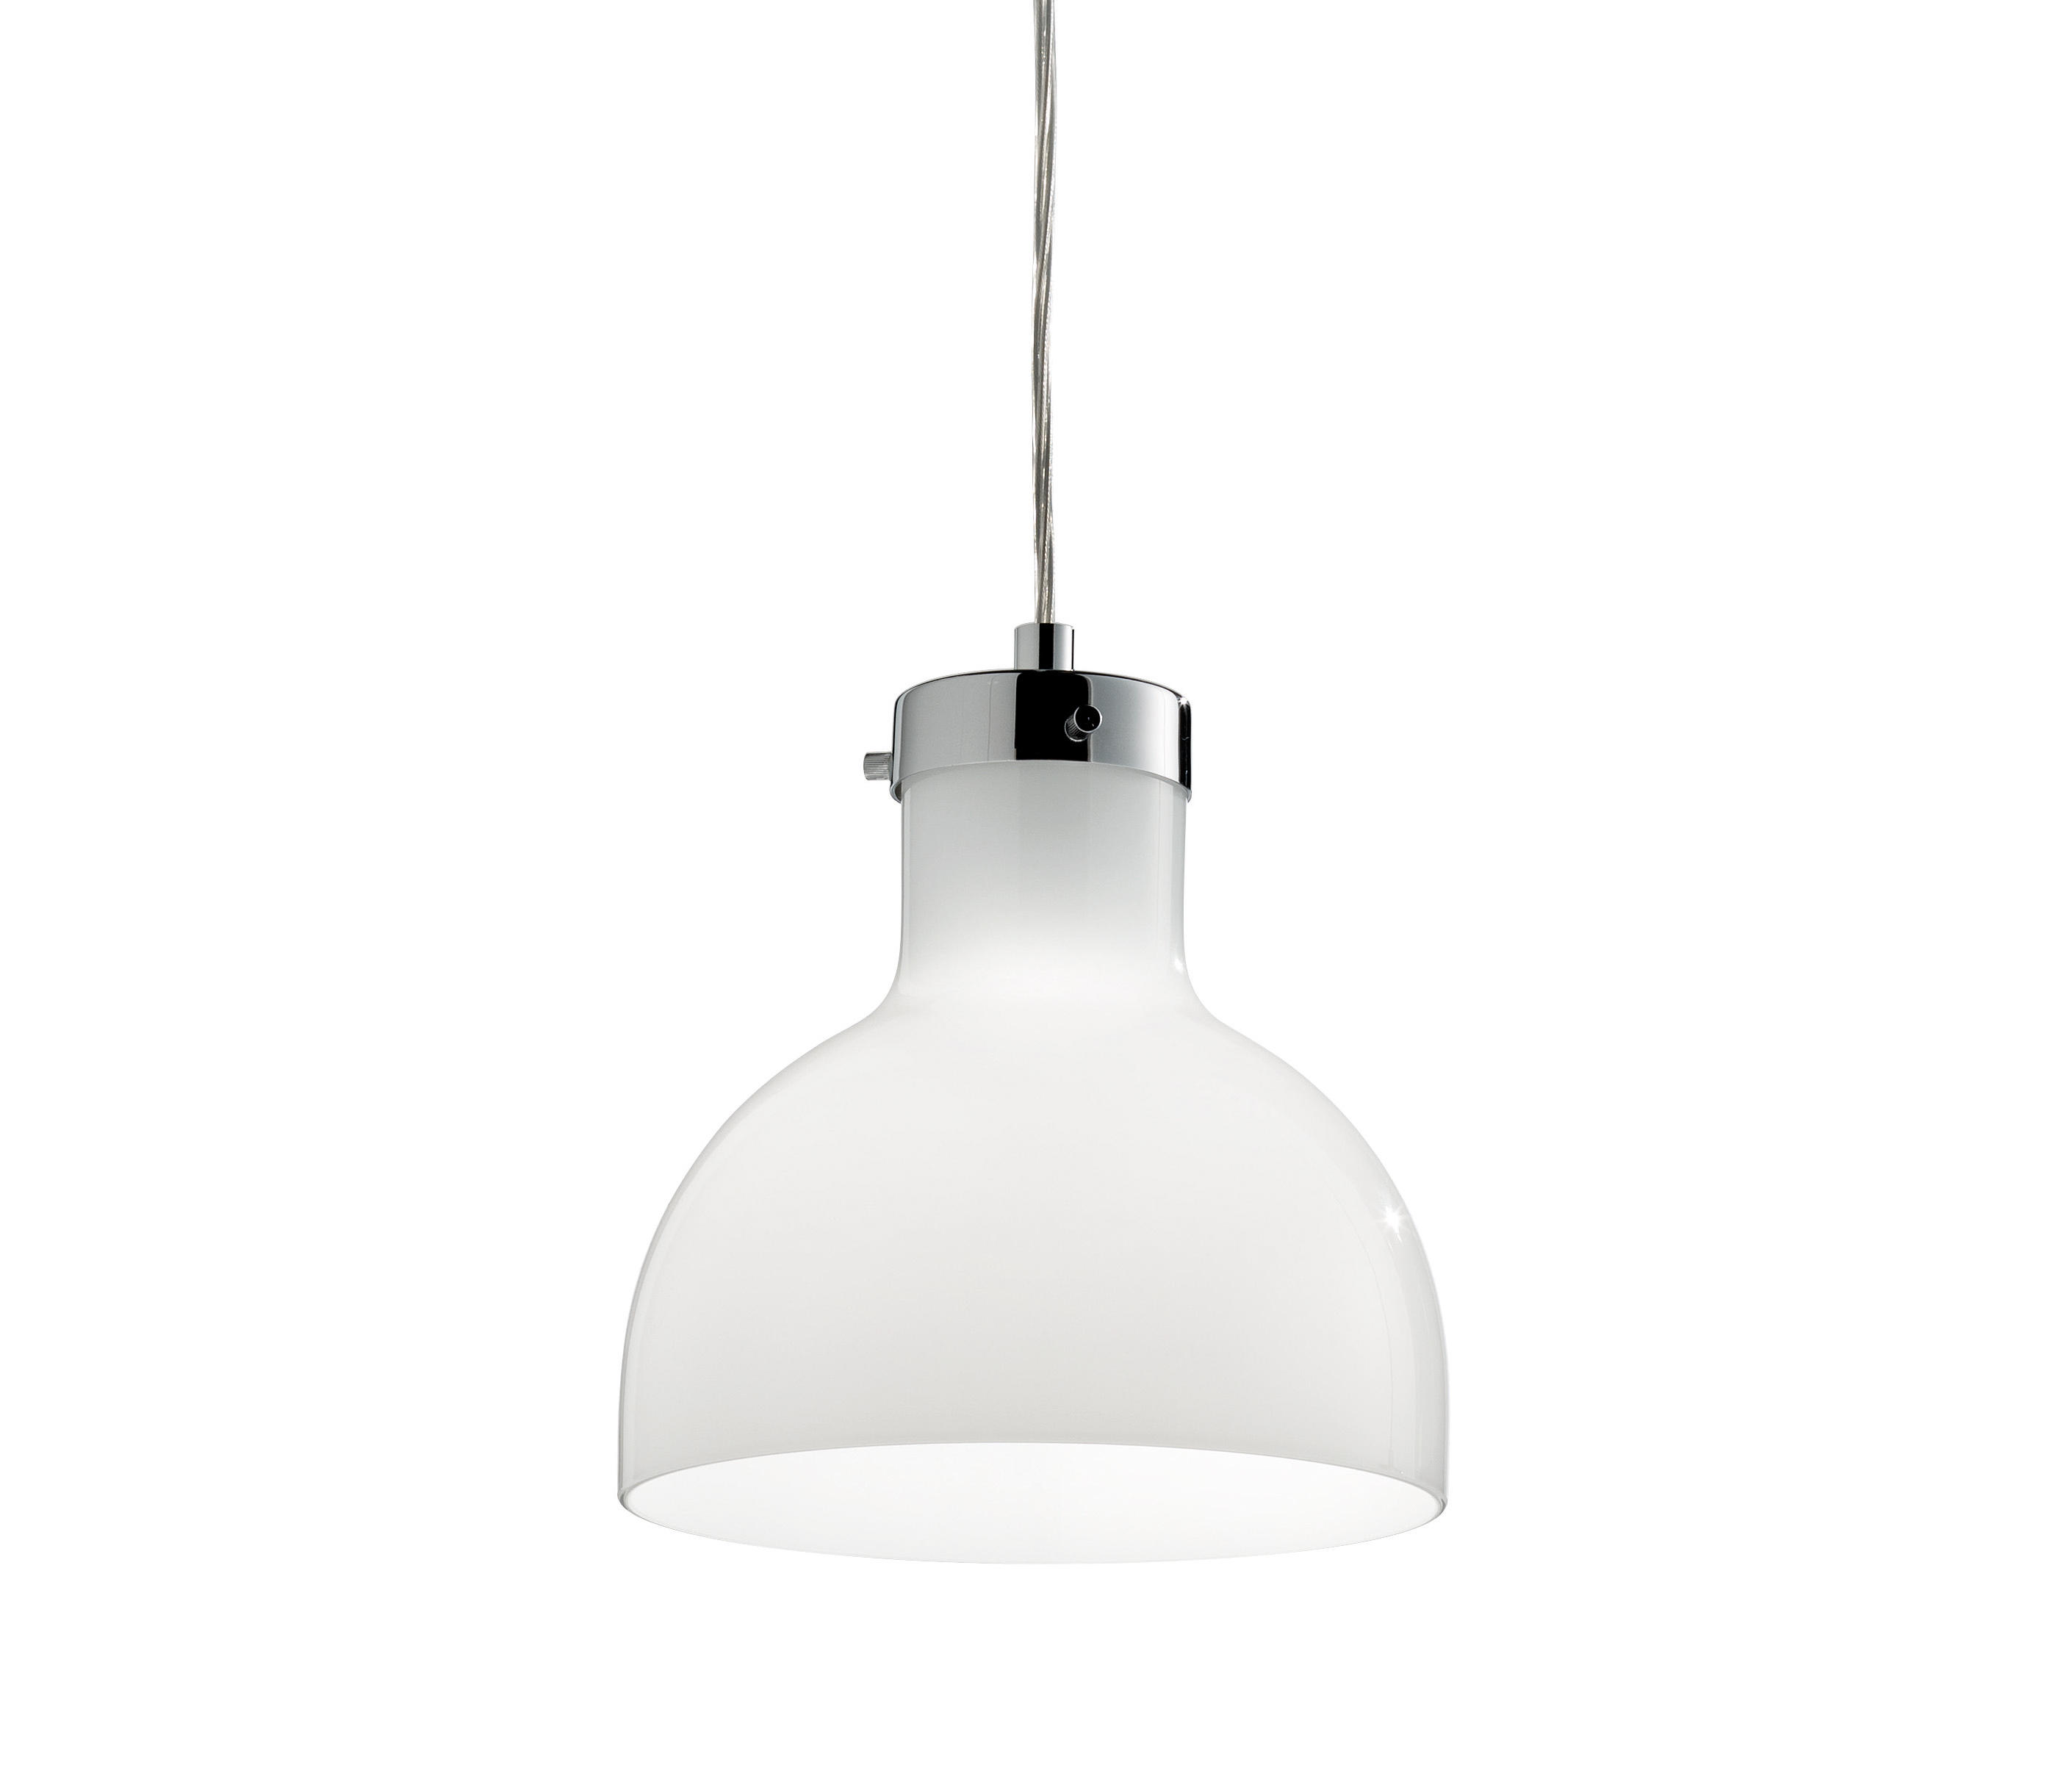 Enne Luci by Vistosi | Suspended lights  sc 1 st  Architonic & ENNE LUCI - Suspended lights from Vistosi | Architonic